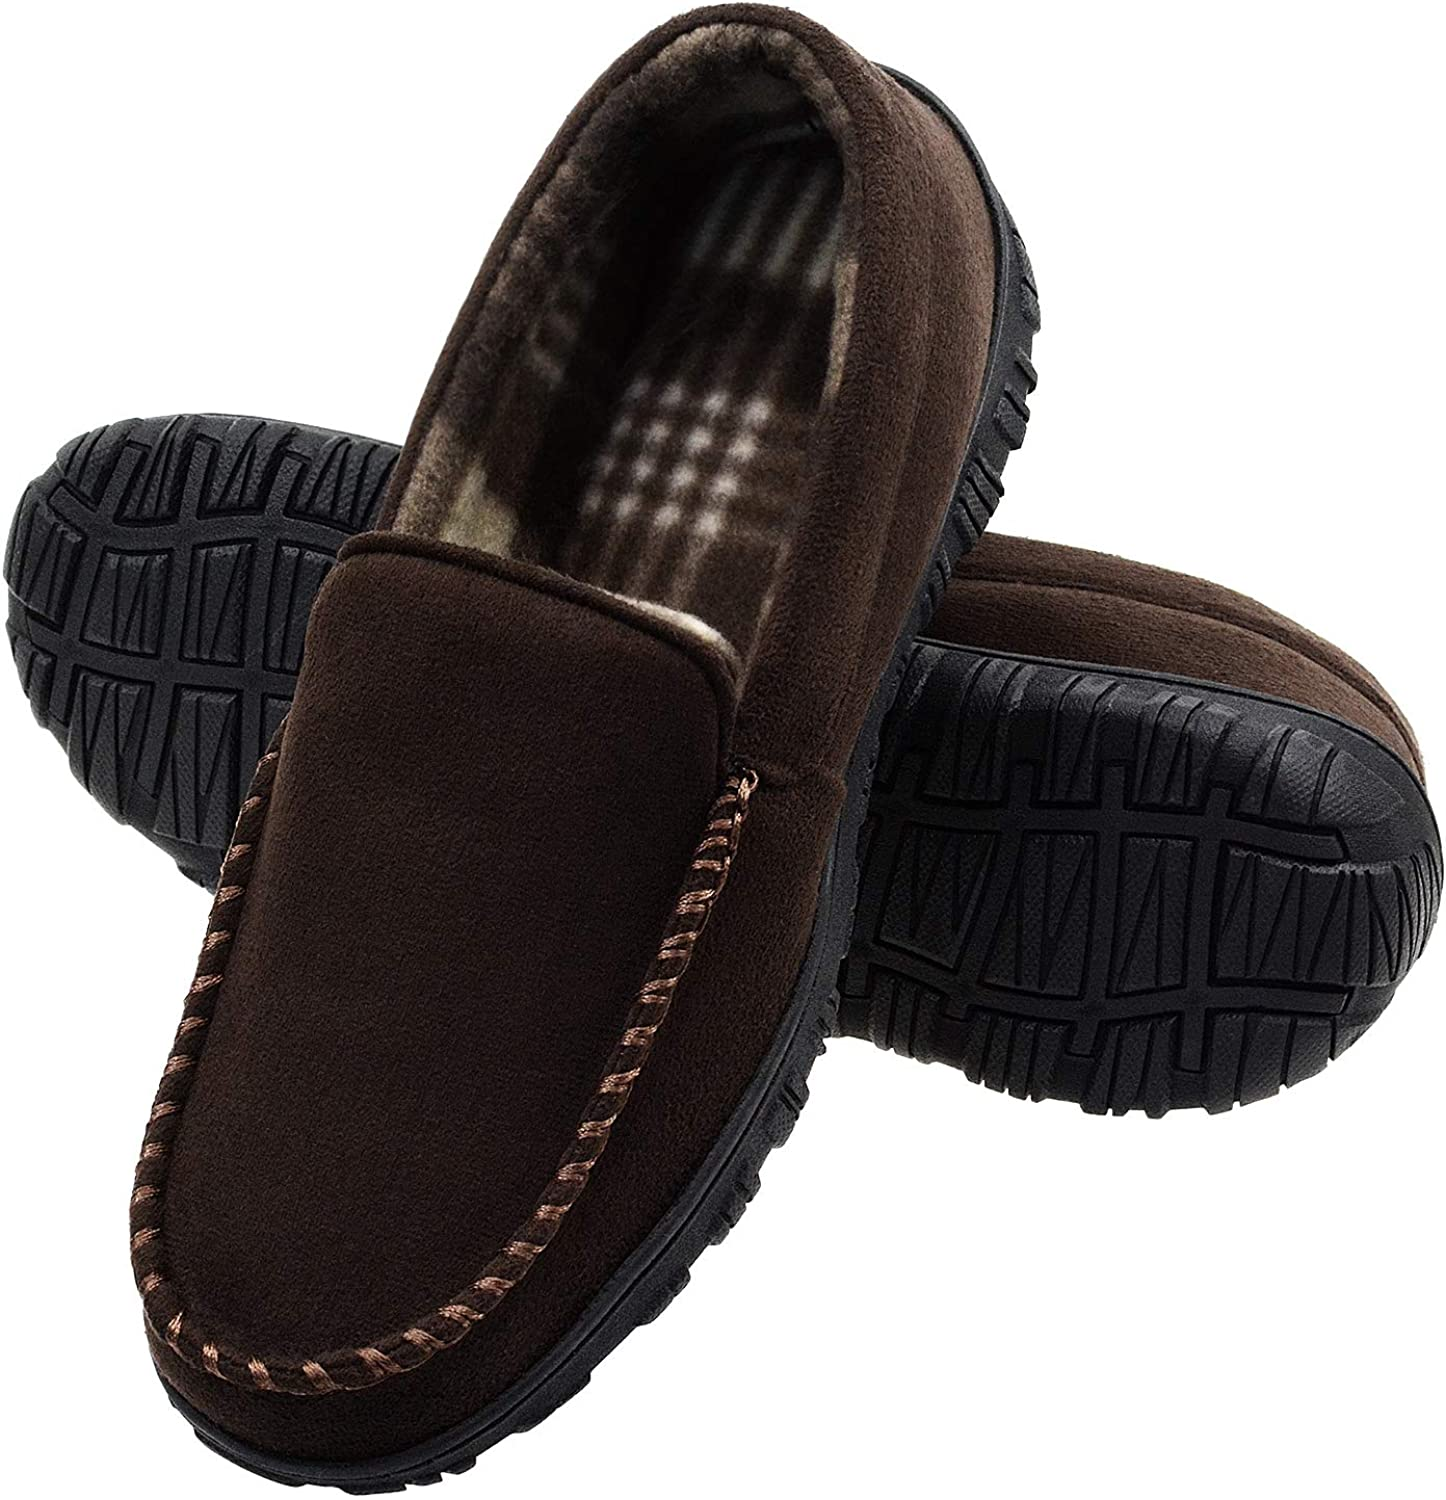 VLLY House Slippers for Men Moccasin Slippers with Comfortable Memory Foam Anti Slip Rubber Sole Driving Bedroom Slippers